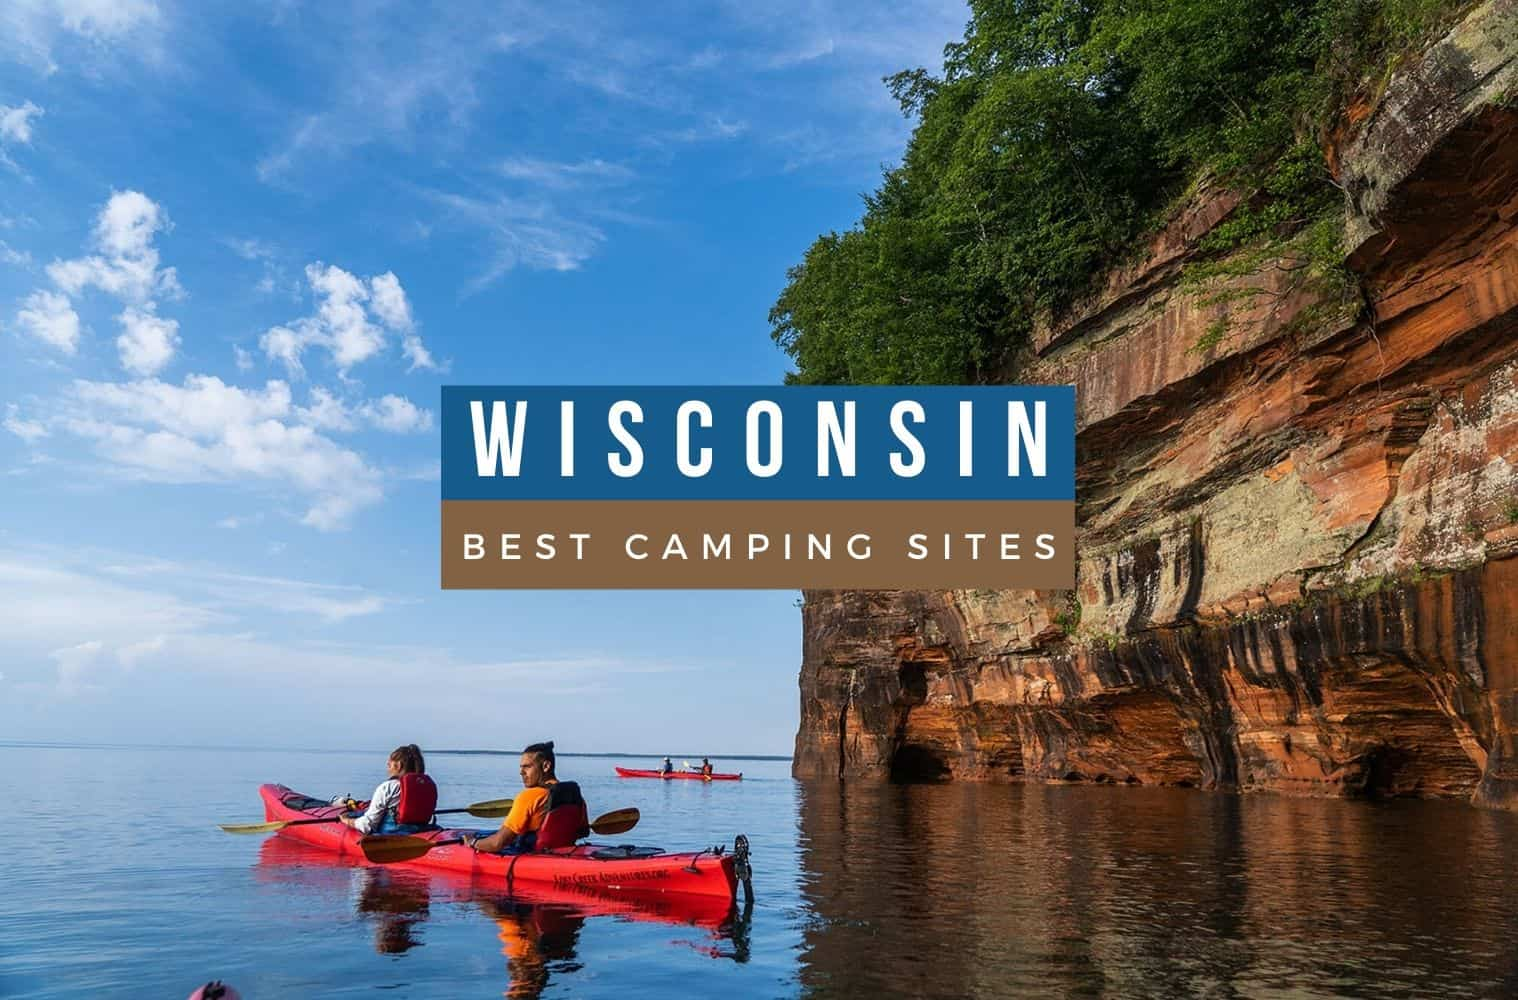 Best Camping Sites in Wisconsin